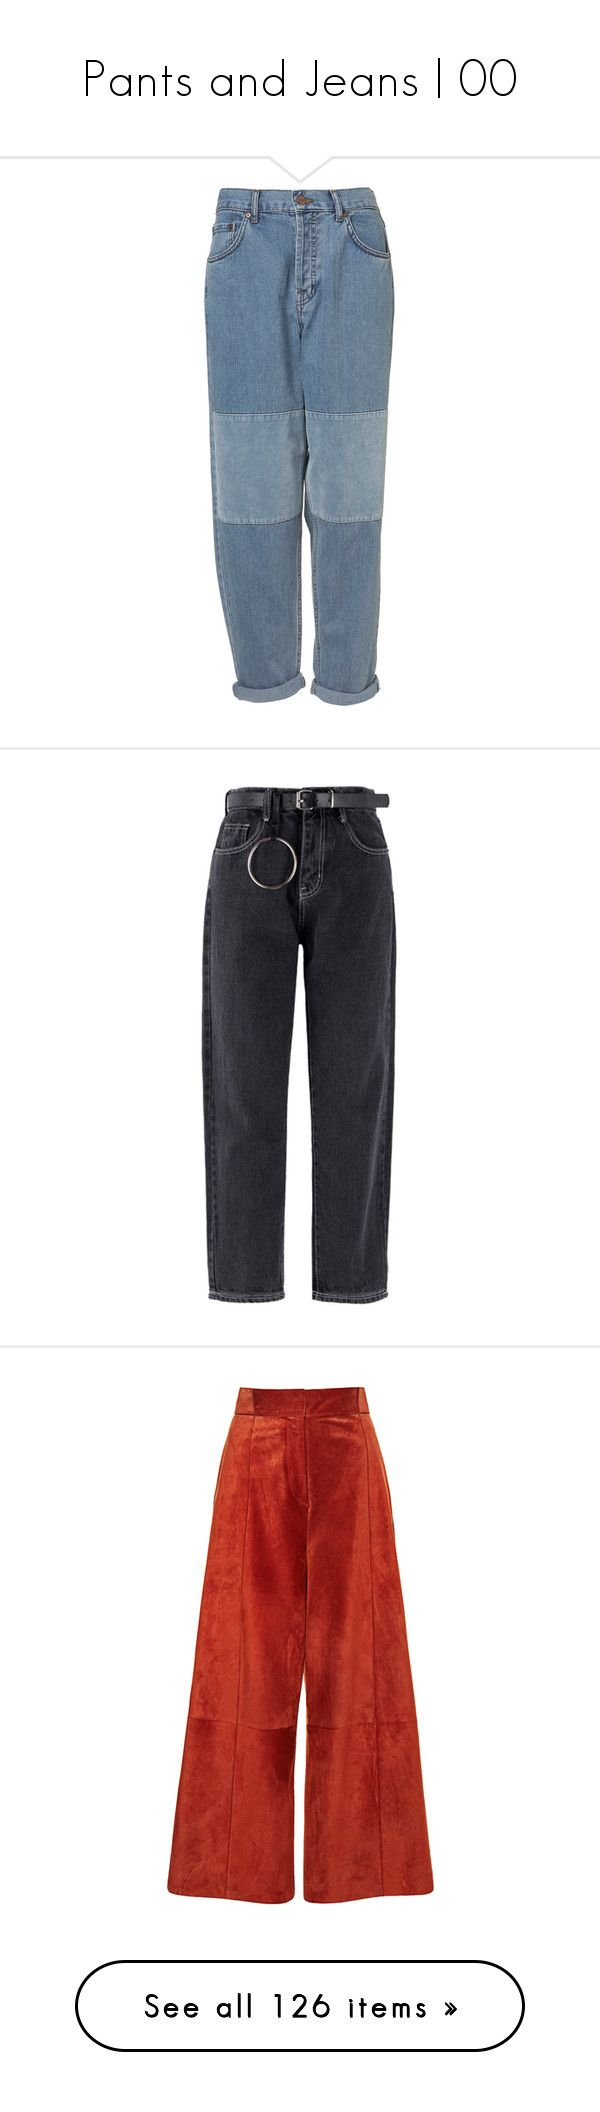 """""""Pants and Jeans   00"""" by taehxbinn ❤ liked on Polyvore featuring jeans, pants, bottoms, denim, velvet jeans, saggy jeans, slouchy jeans, oversized jeans, slouch jeans and trousers"""